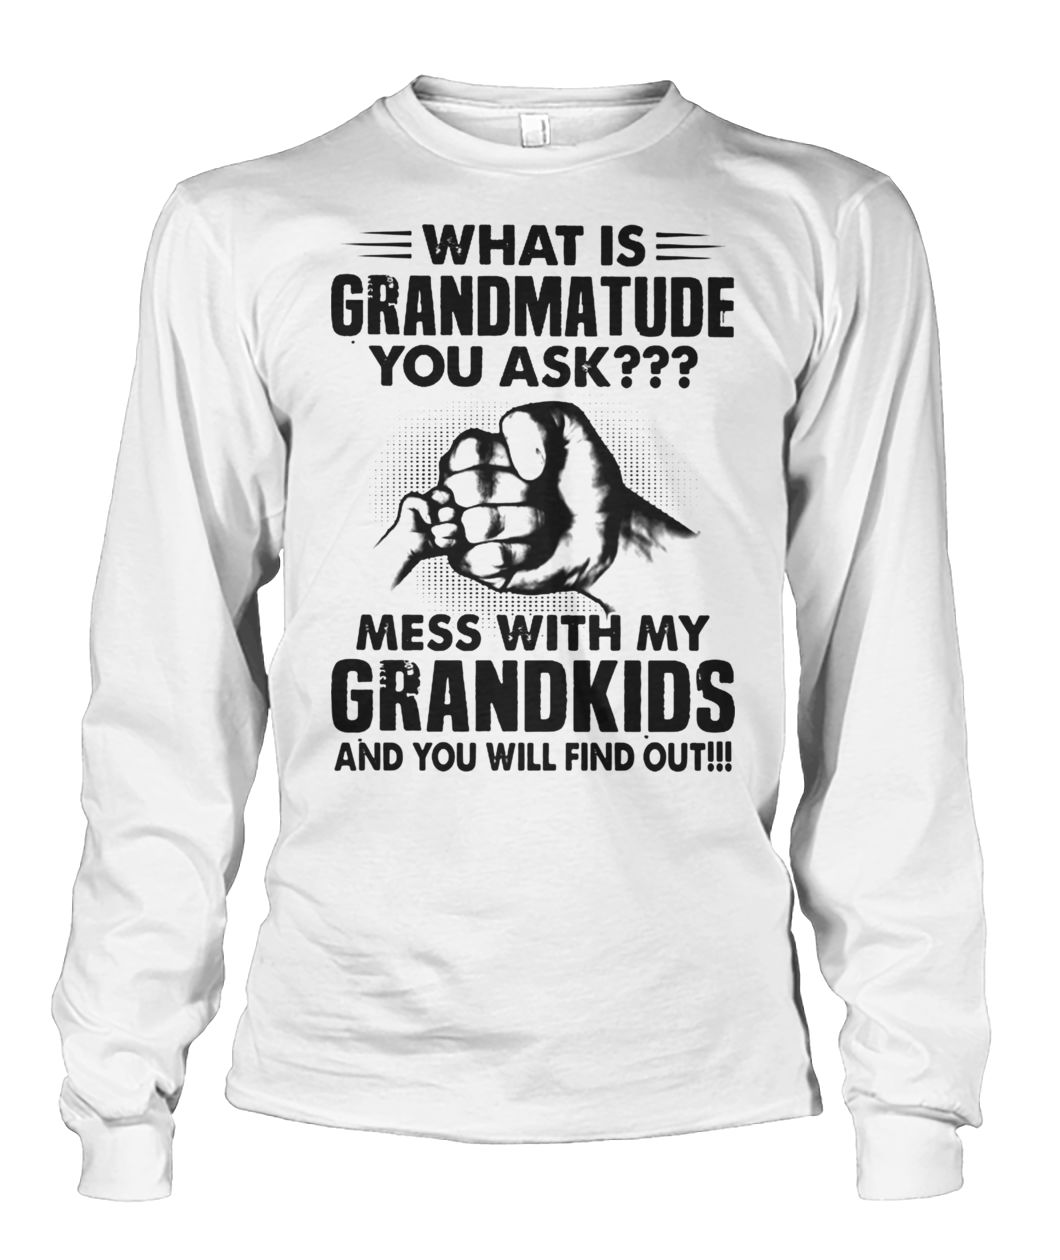 What is grandmatude you ask mess with my grandkids and you will find out unisex long sleeve